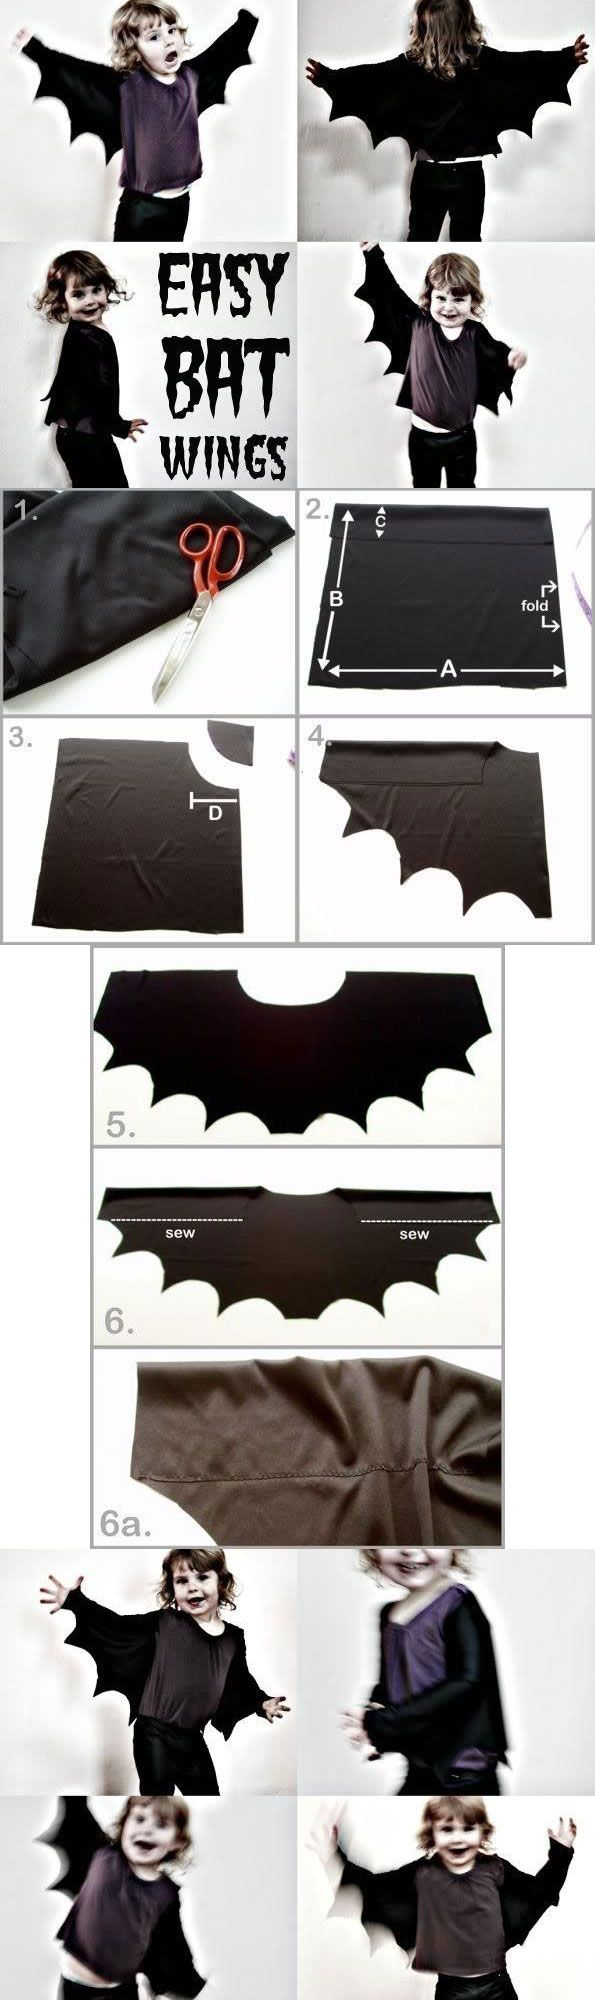 How to easy bat wings for halloween or dress ups bat wings bats make bat wings the easy way only minimal sewing required mypoppet solutioingenieria Image collections